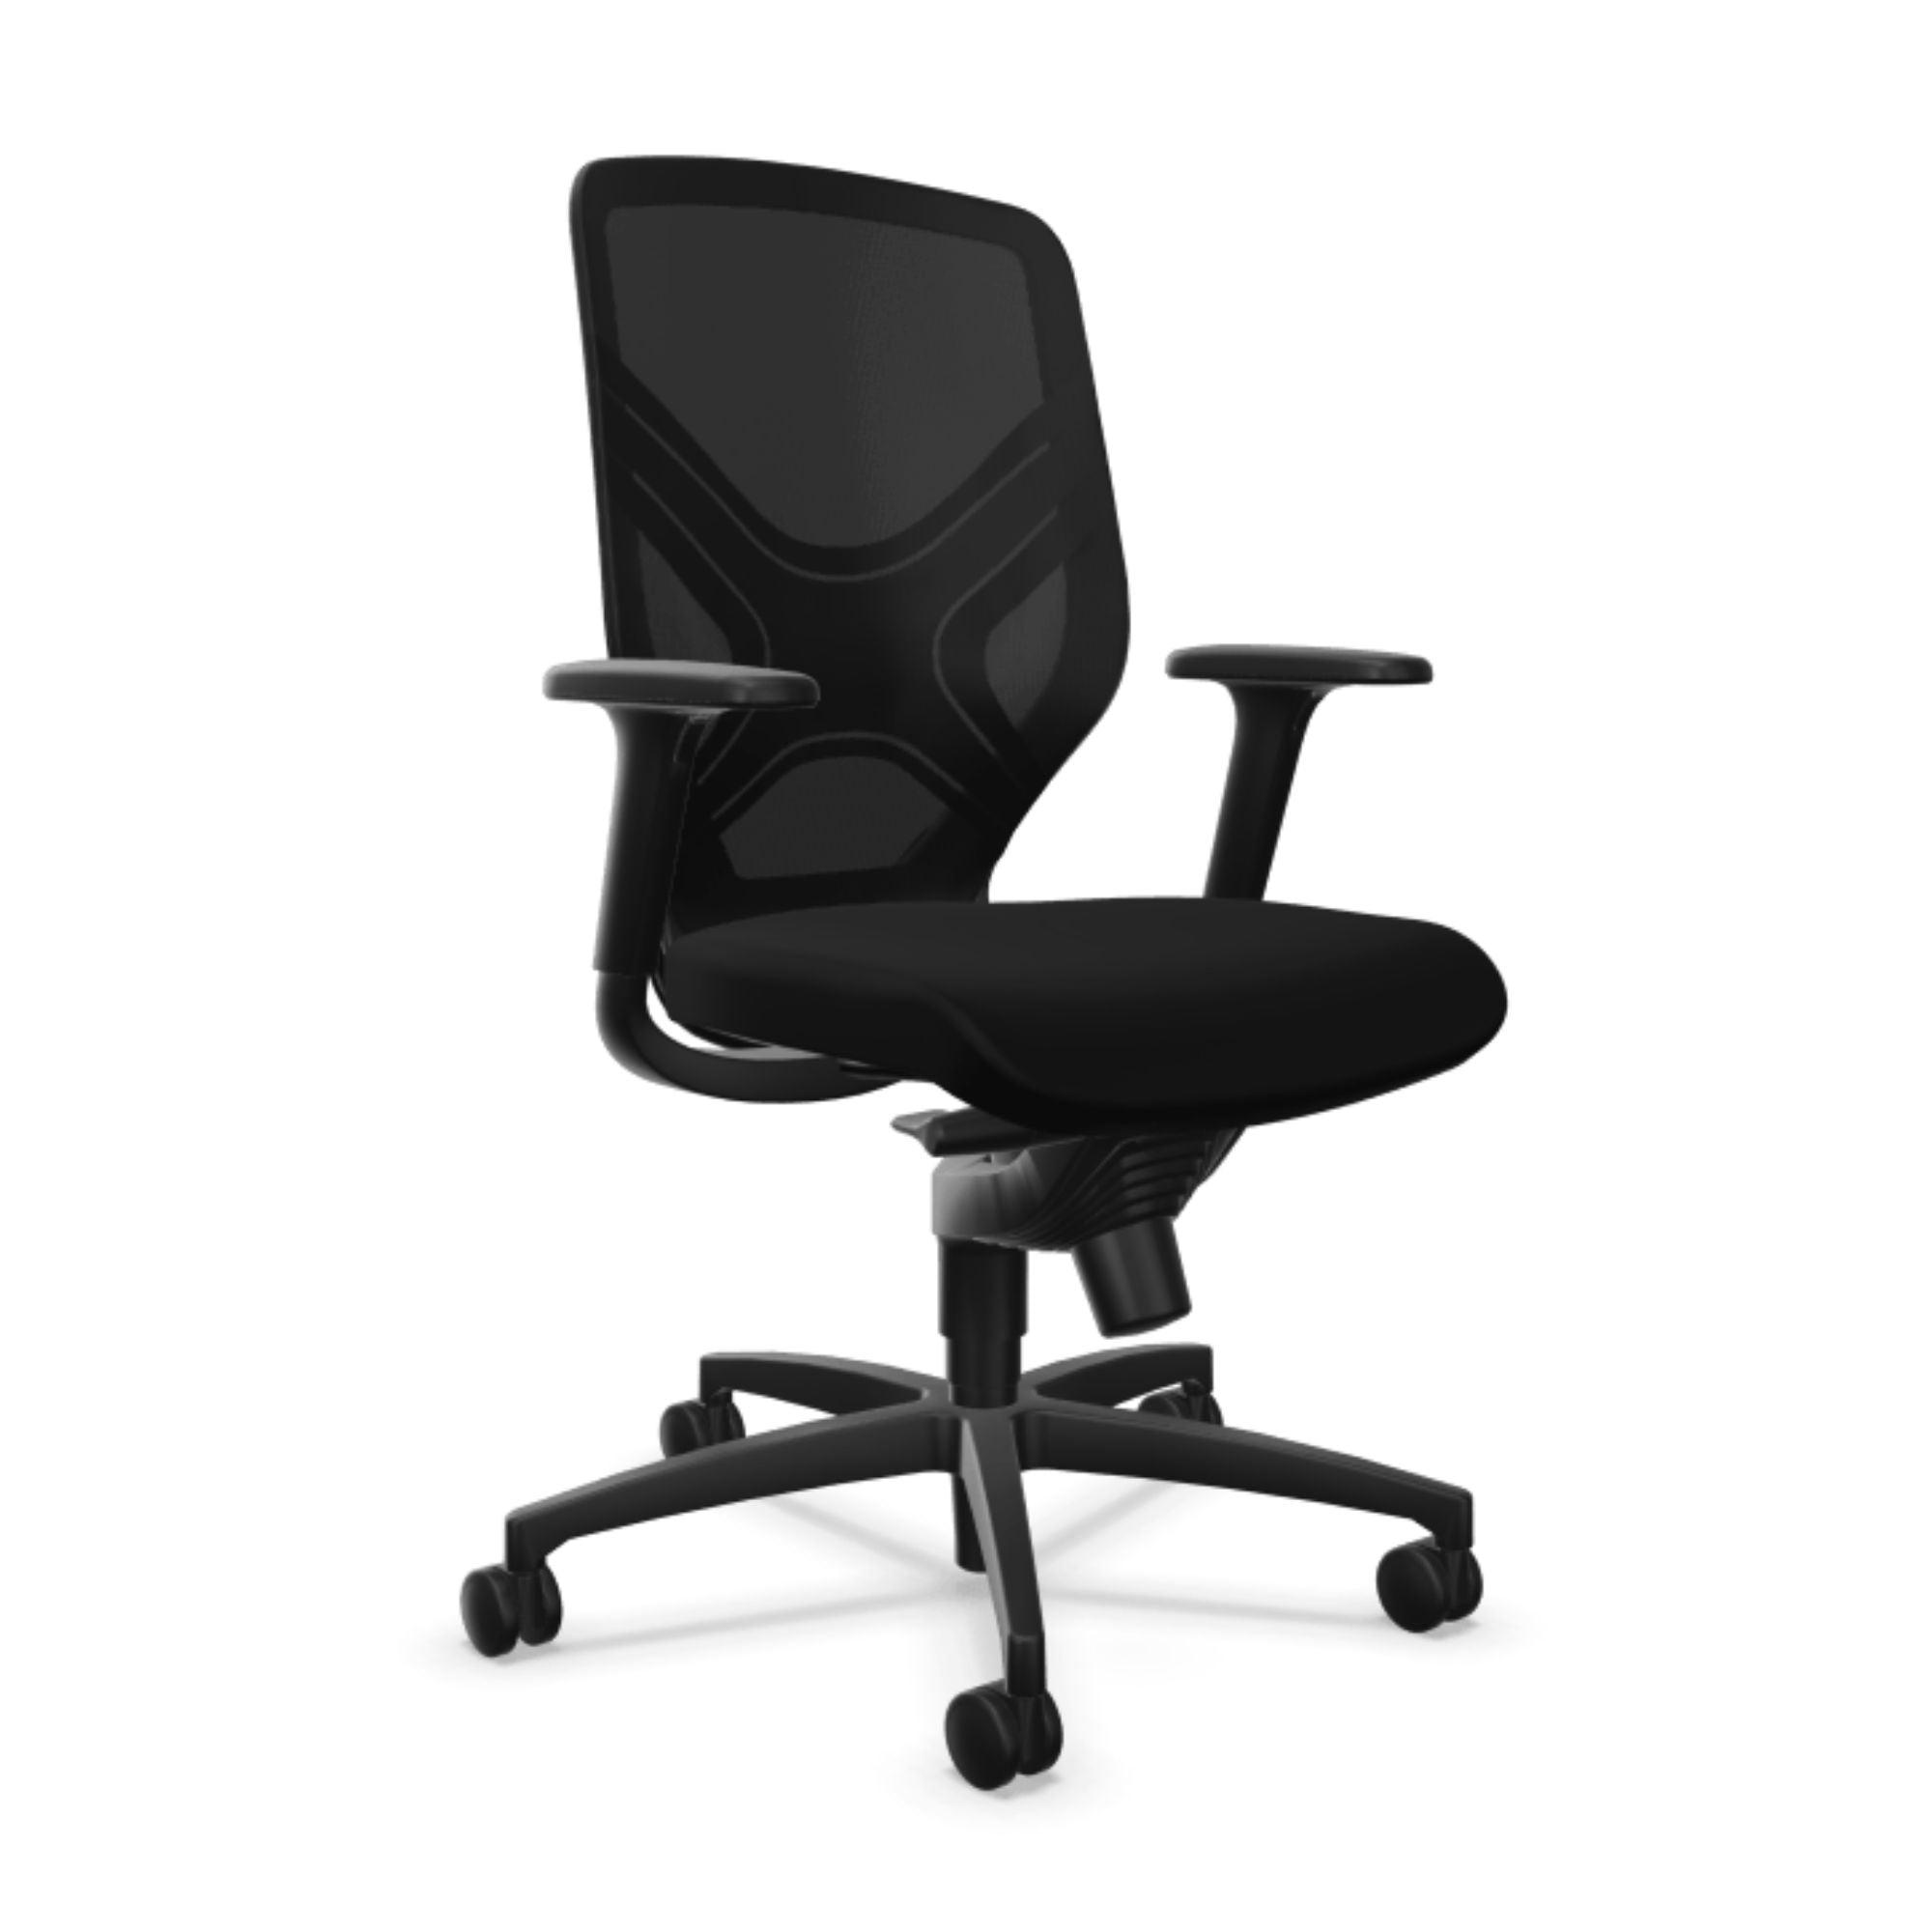 Wilkhahn In 184/7 Office Swivel Arm Chair